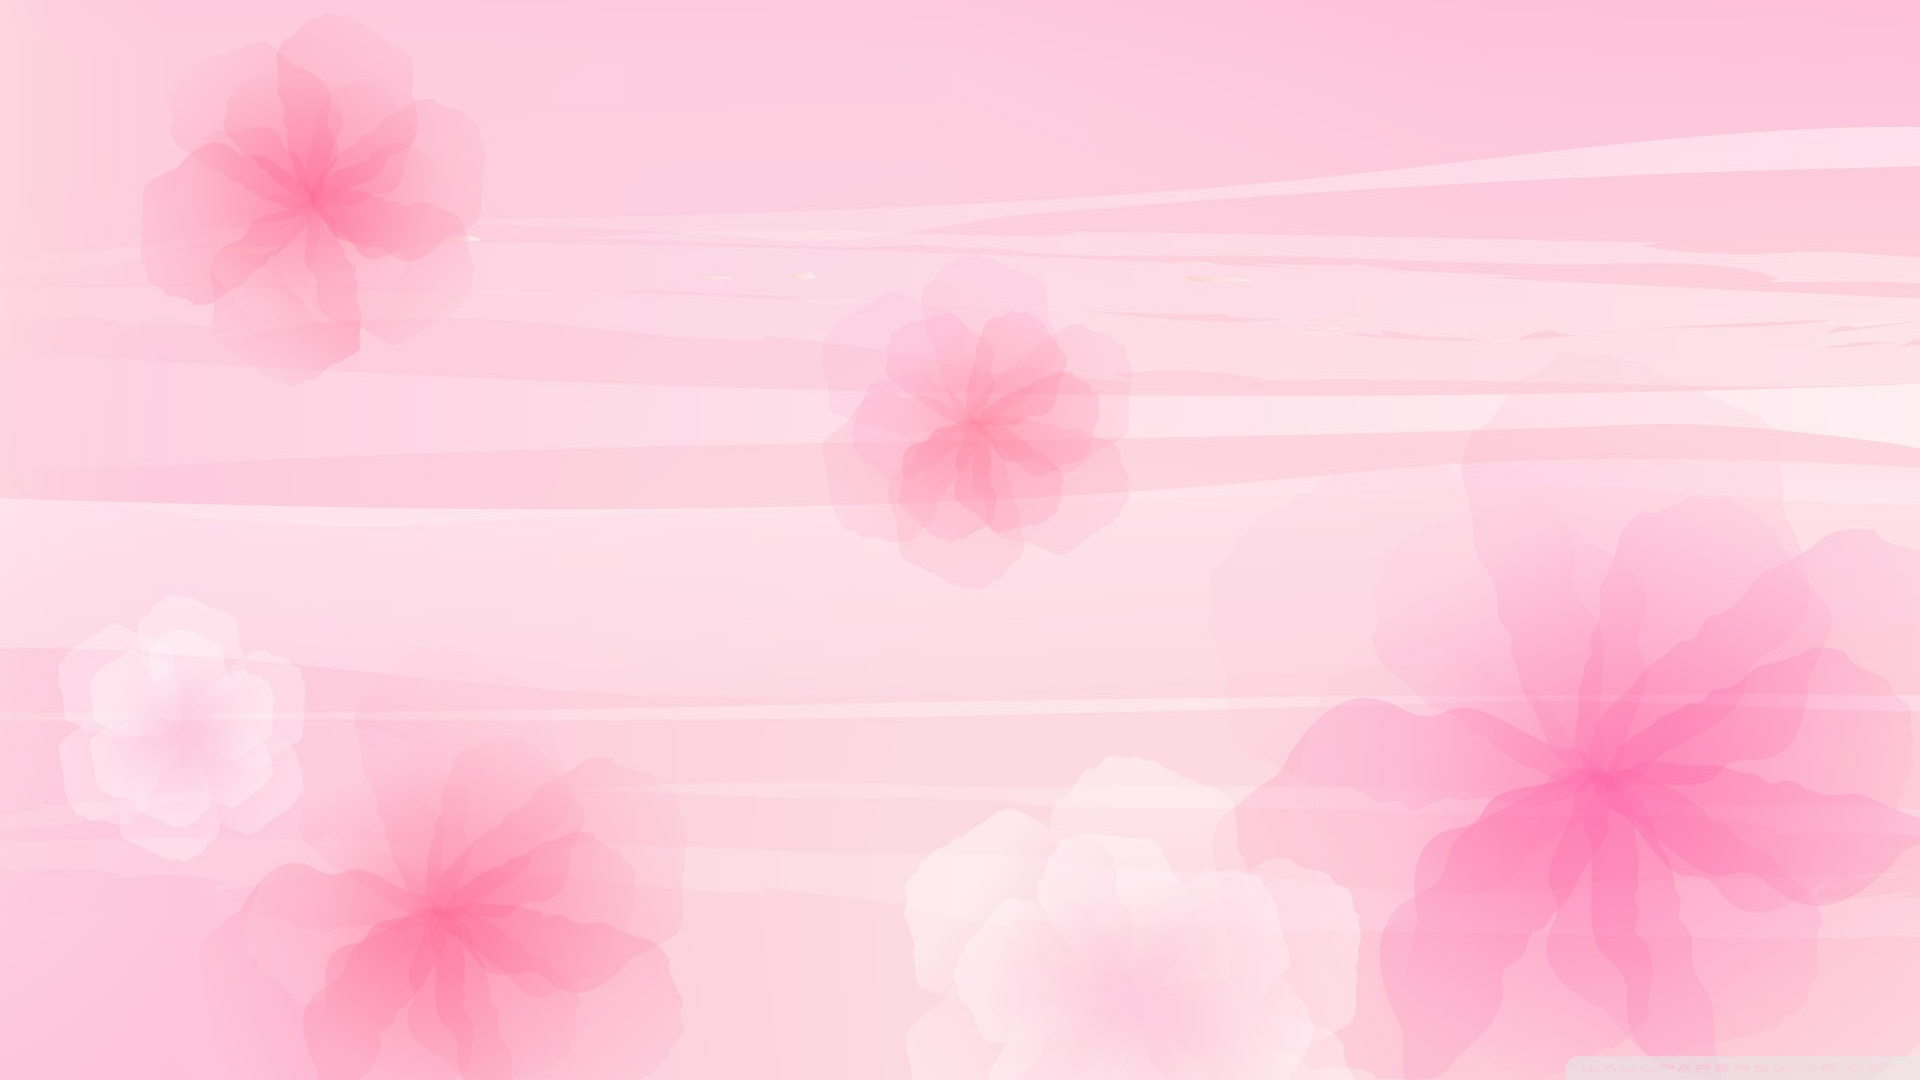 Background images flowers pink sf wallpaper pink flower background wallpapersafari mightylinksfo